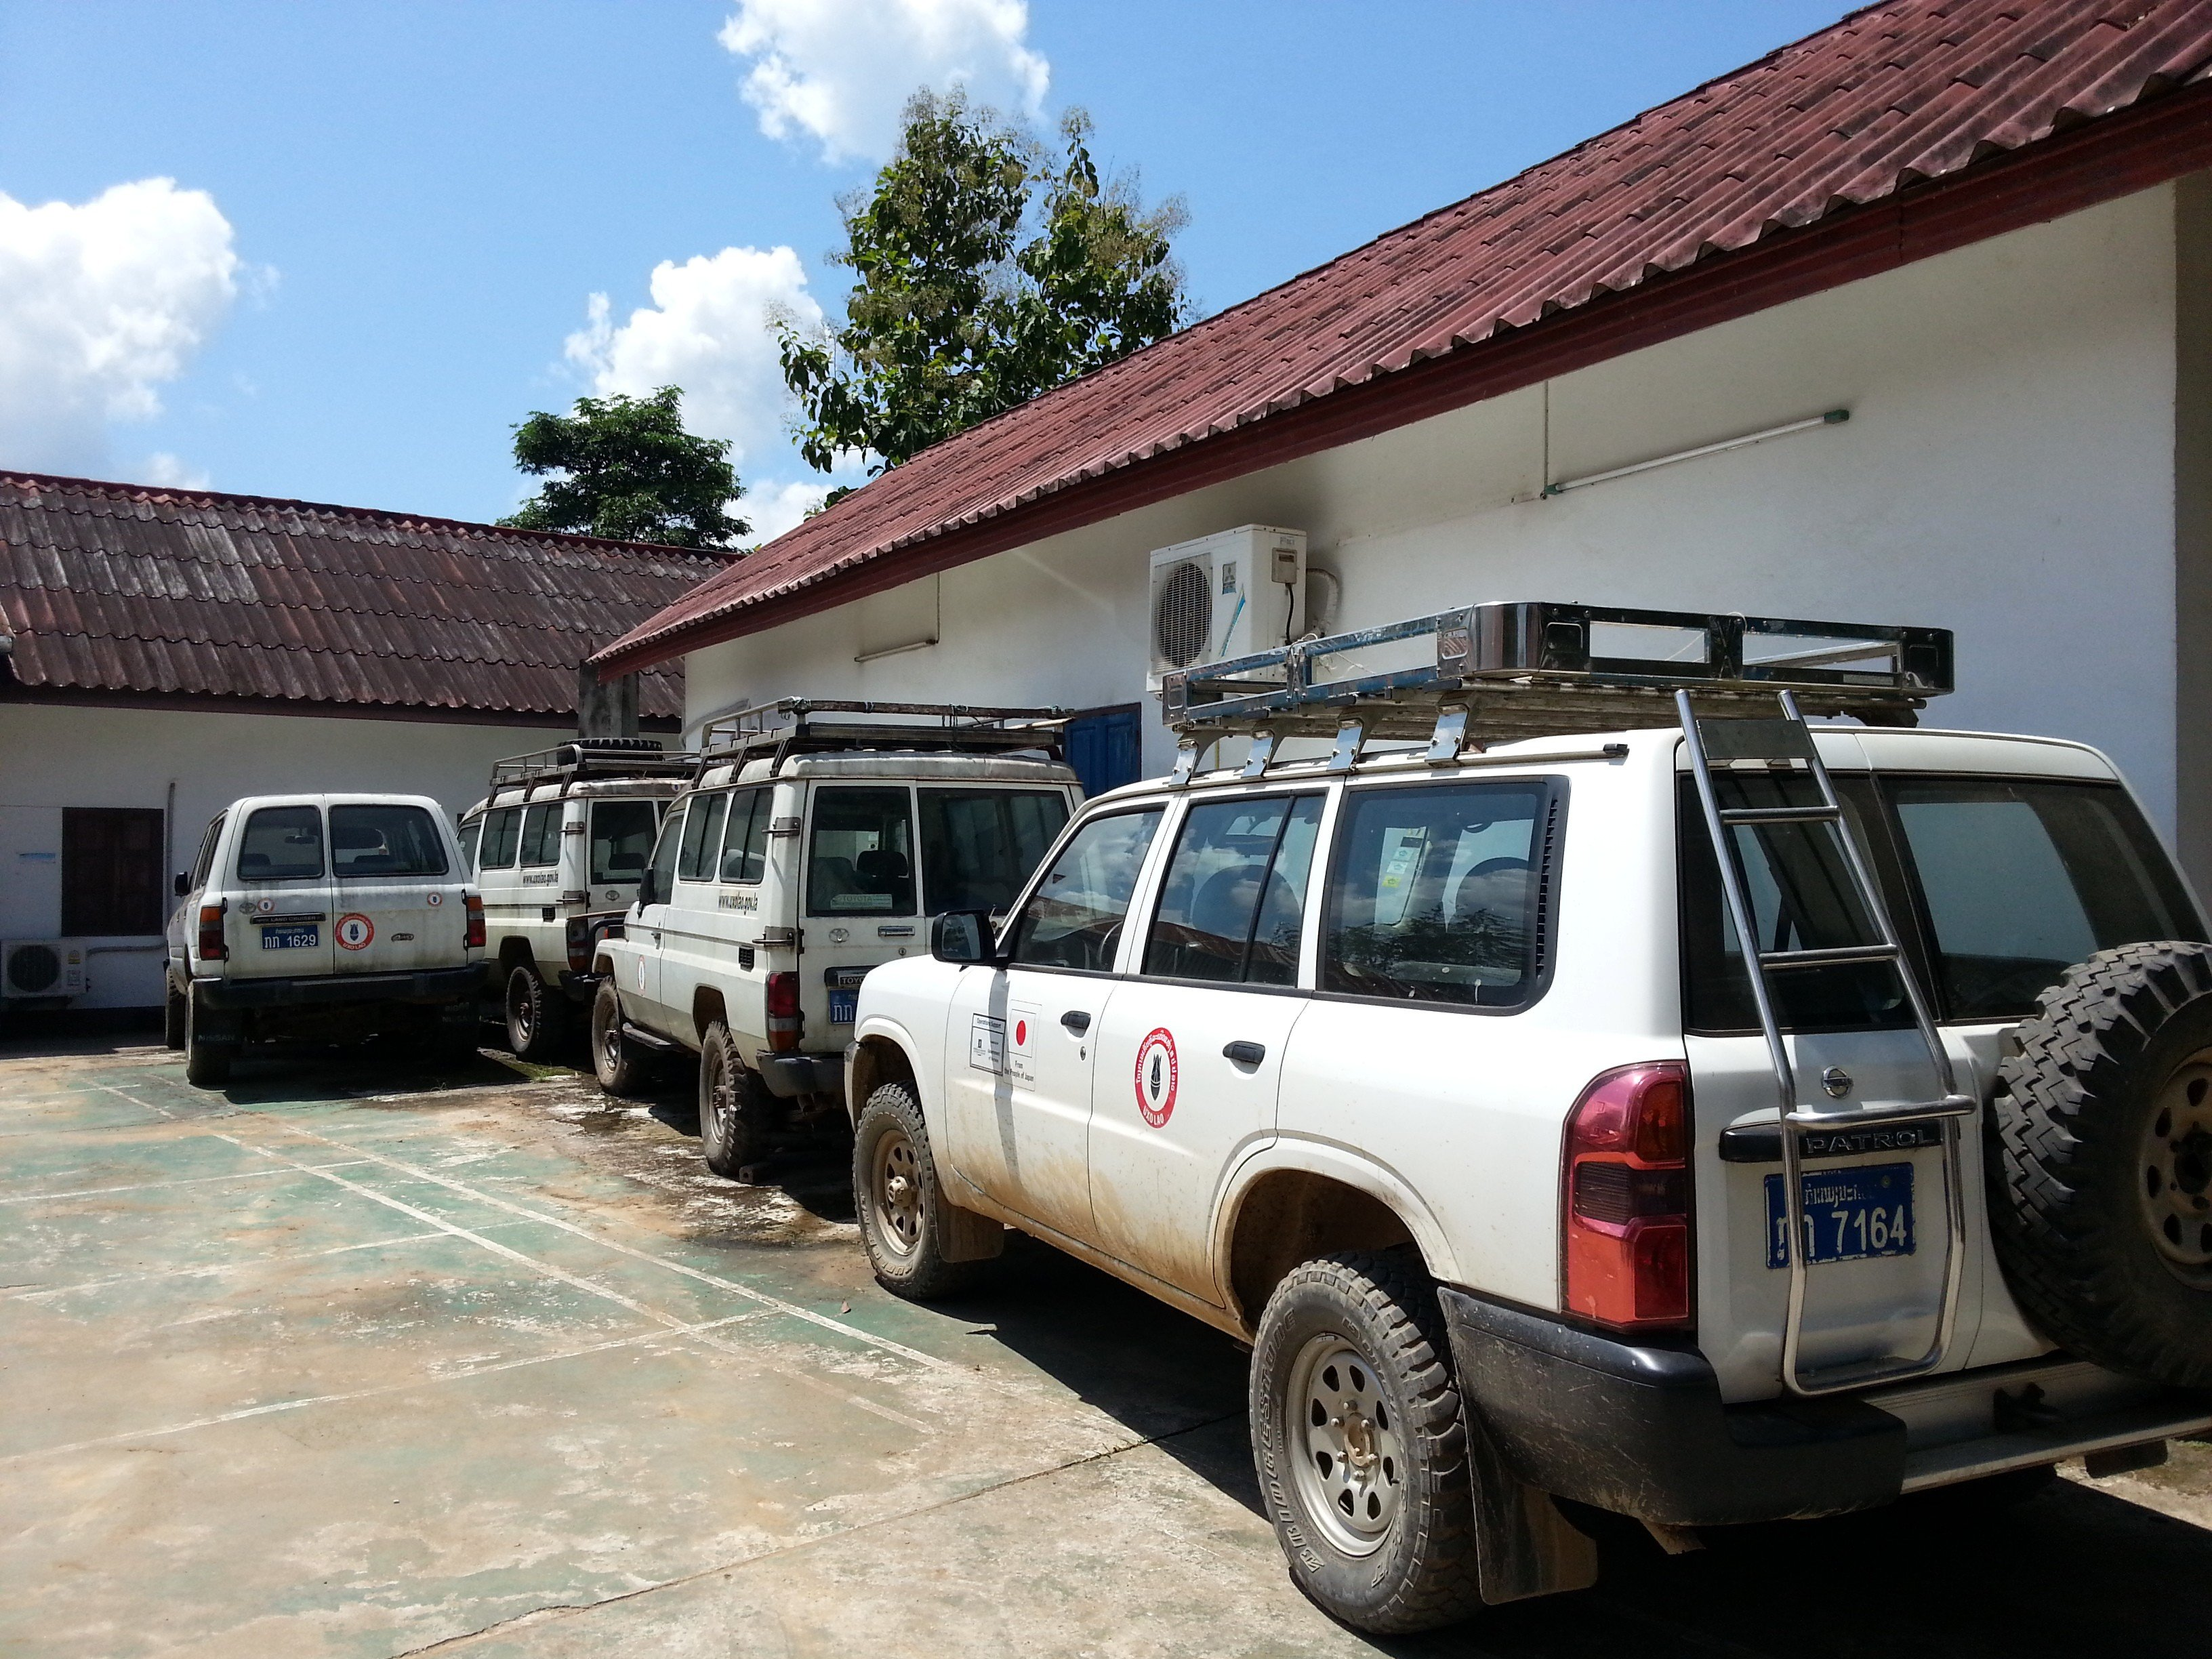 UXO Lao Luang Prabang vehicles